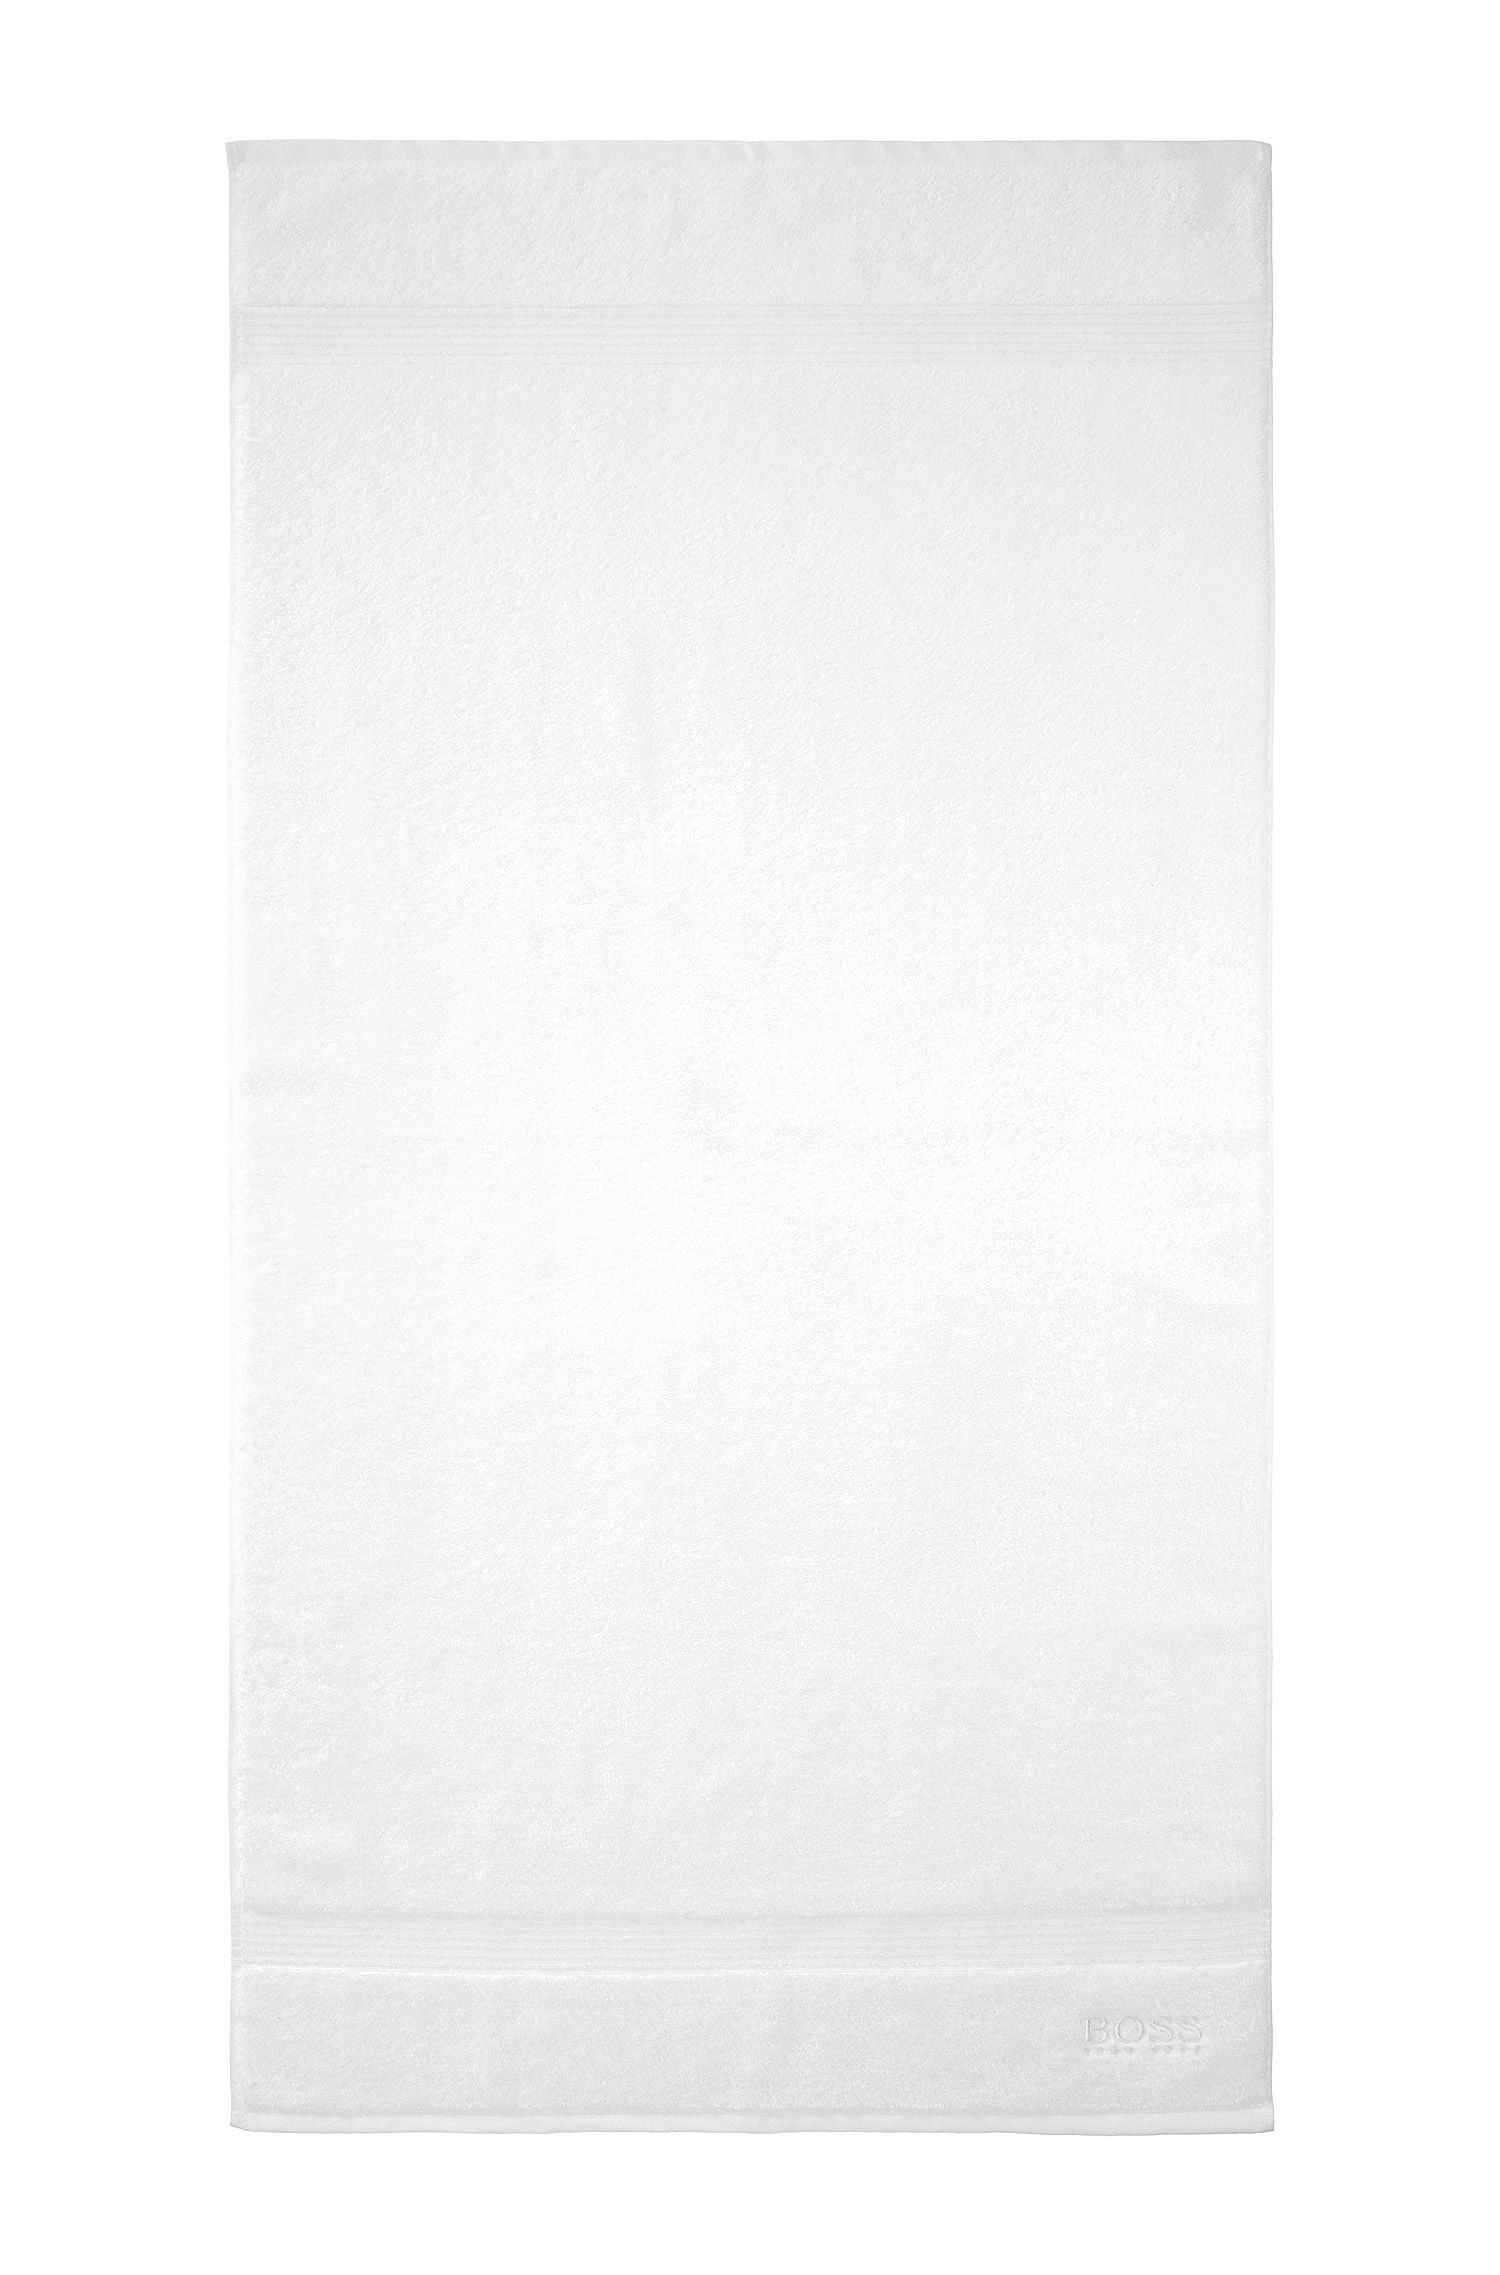 Shower towel 'LOFT Serviette douch', cotton terry